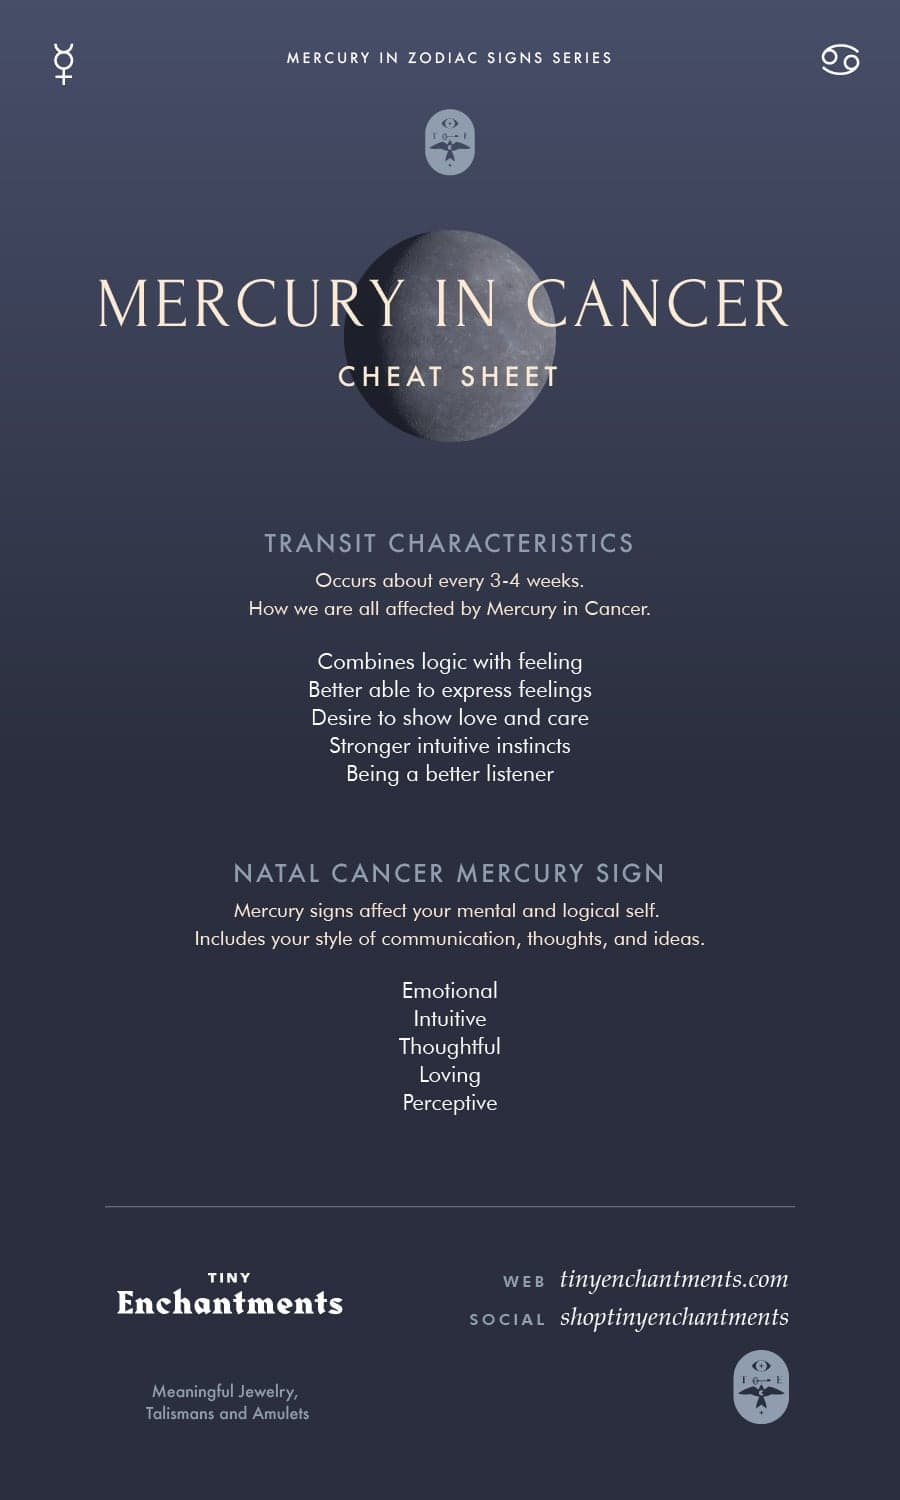 Mercury in Cancer - Cancer Mercury Sign and Mercury in Cancer Transit Meanings